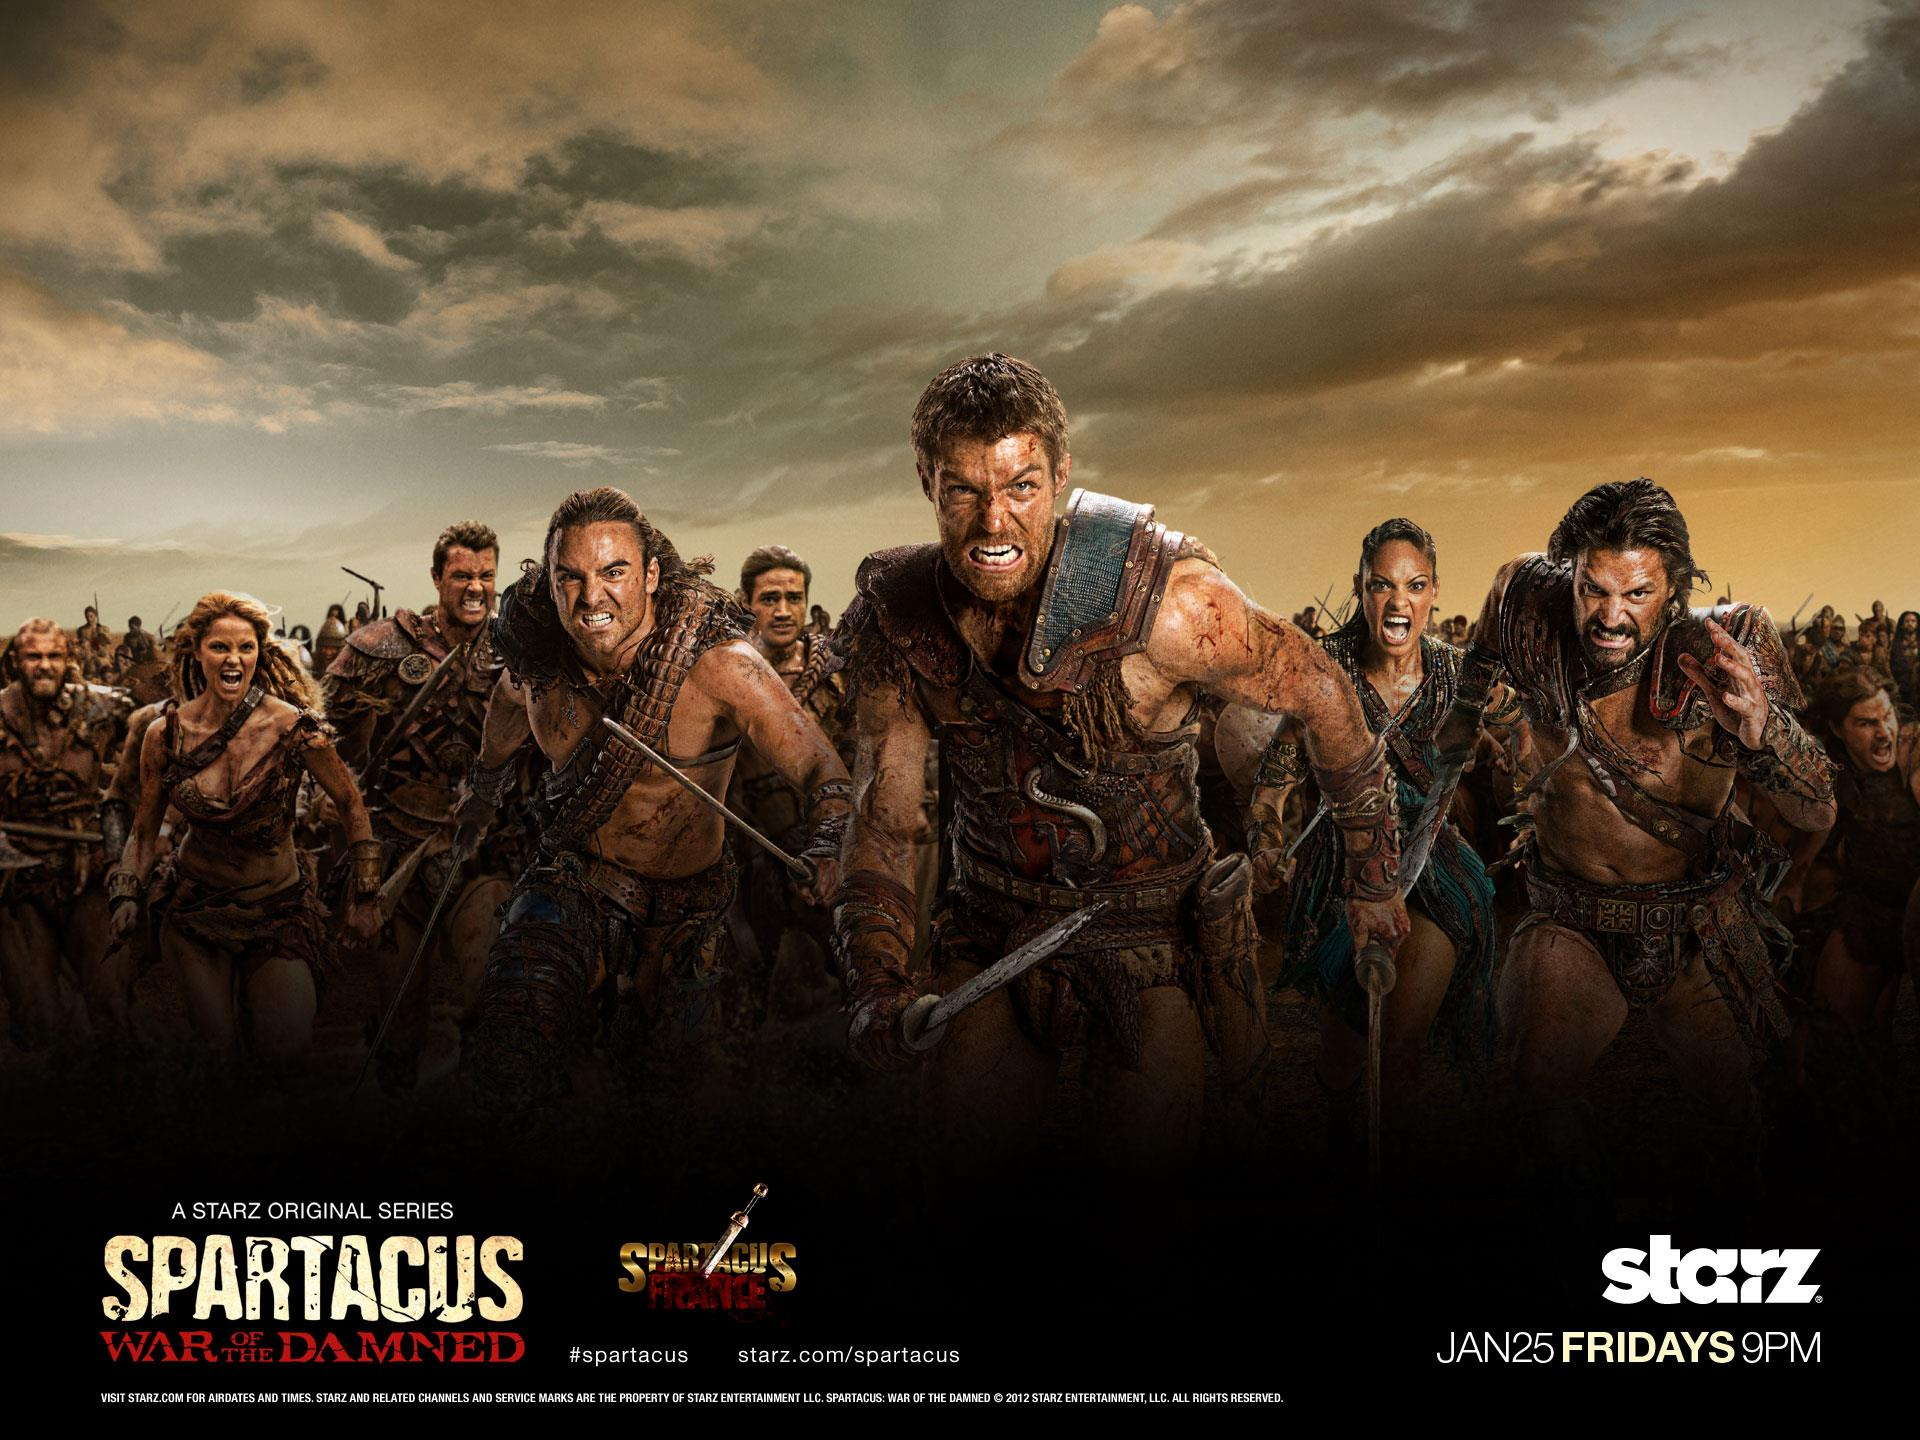 Spartacus, Starz, War of the Damned, Roman Gladiators